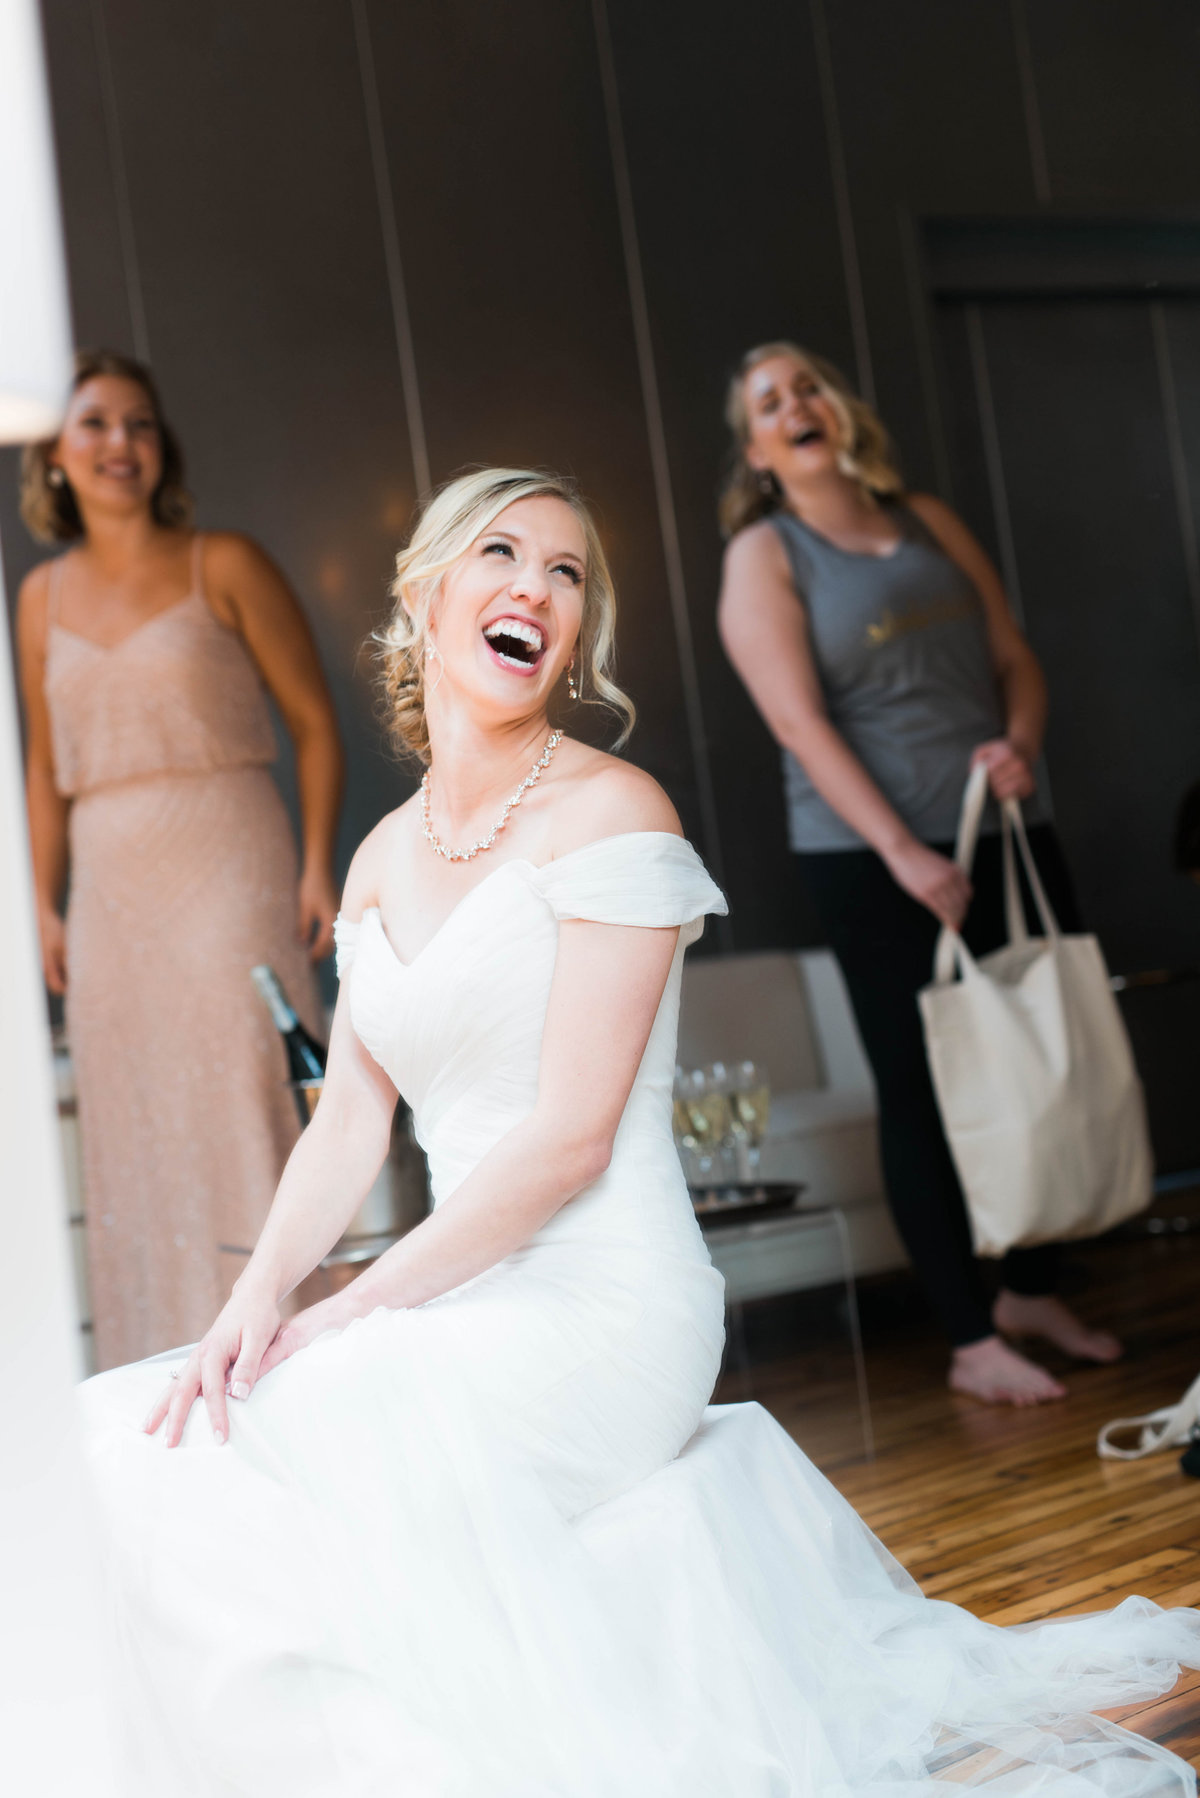 Bride laughing before the ceremony